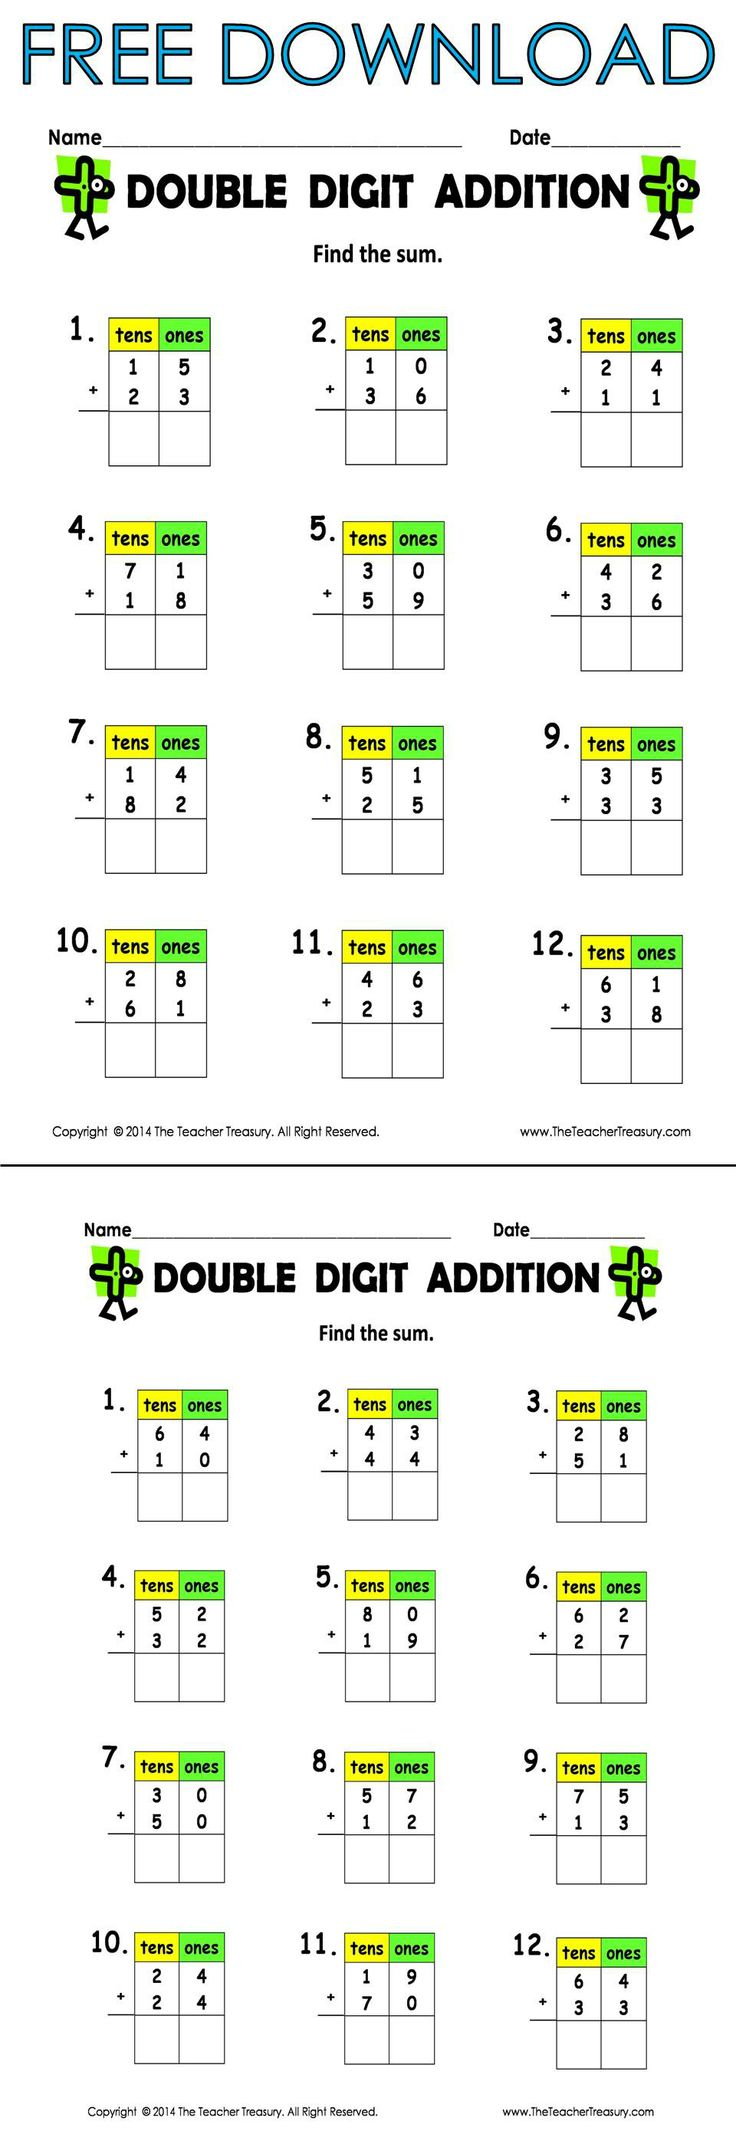 Double digit addition worksheets without regrouping free